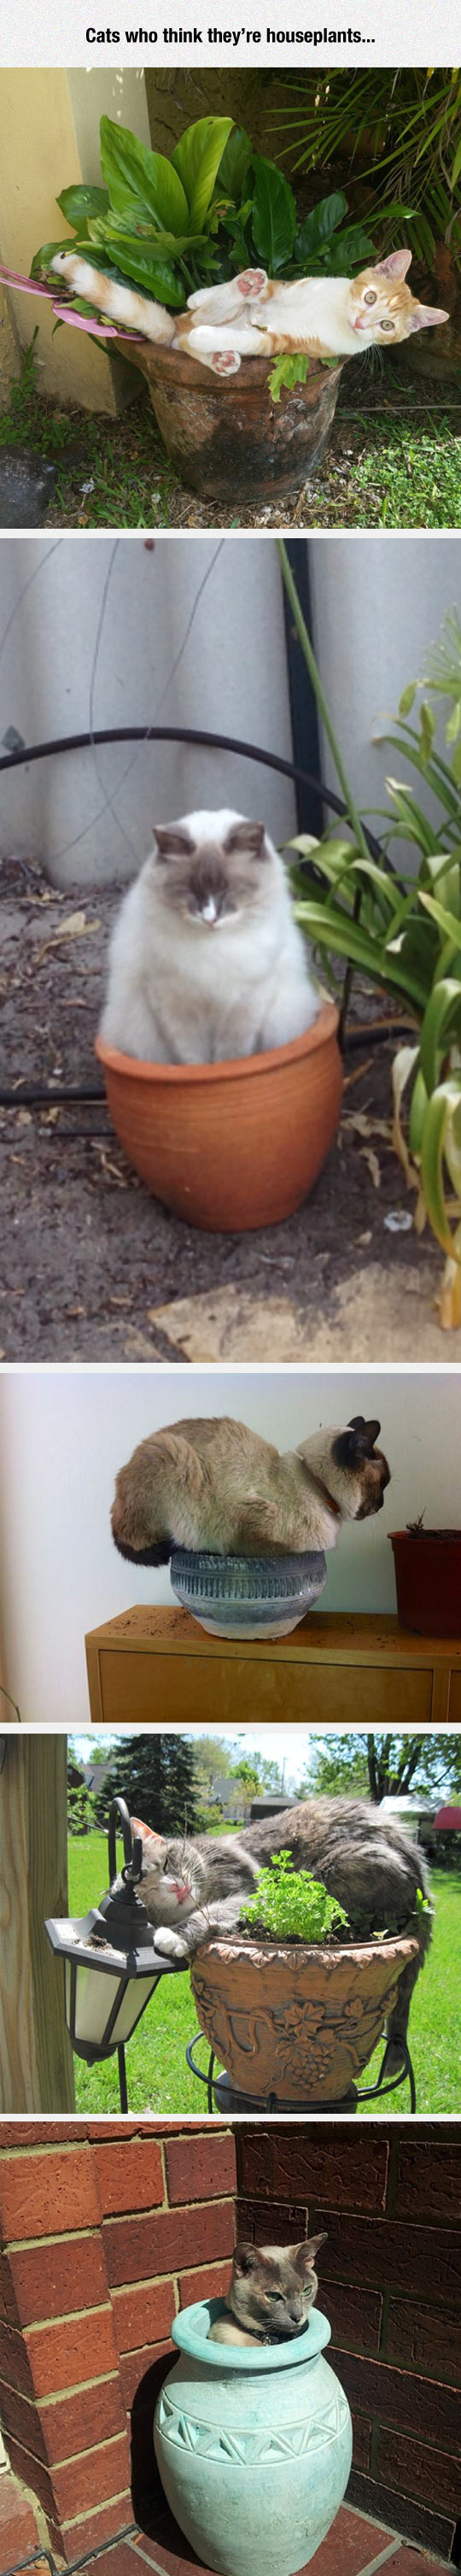 funny-cat-pot-plant-sitting